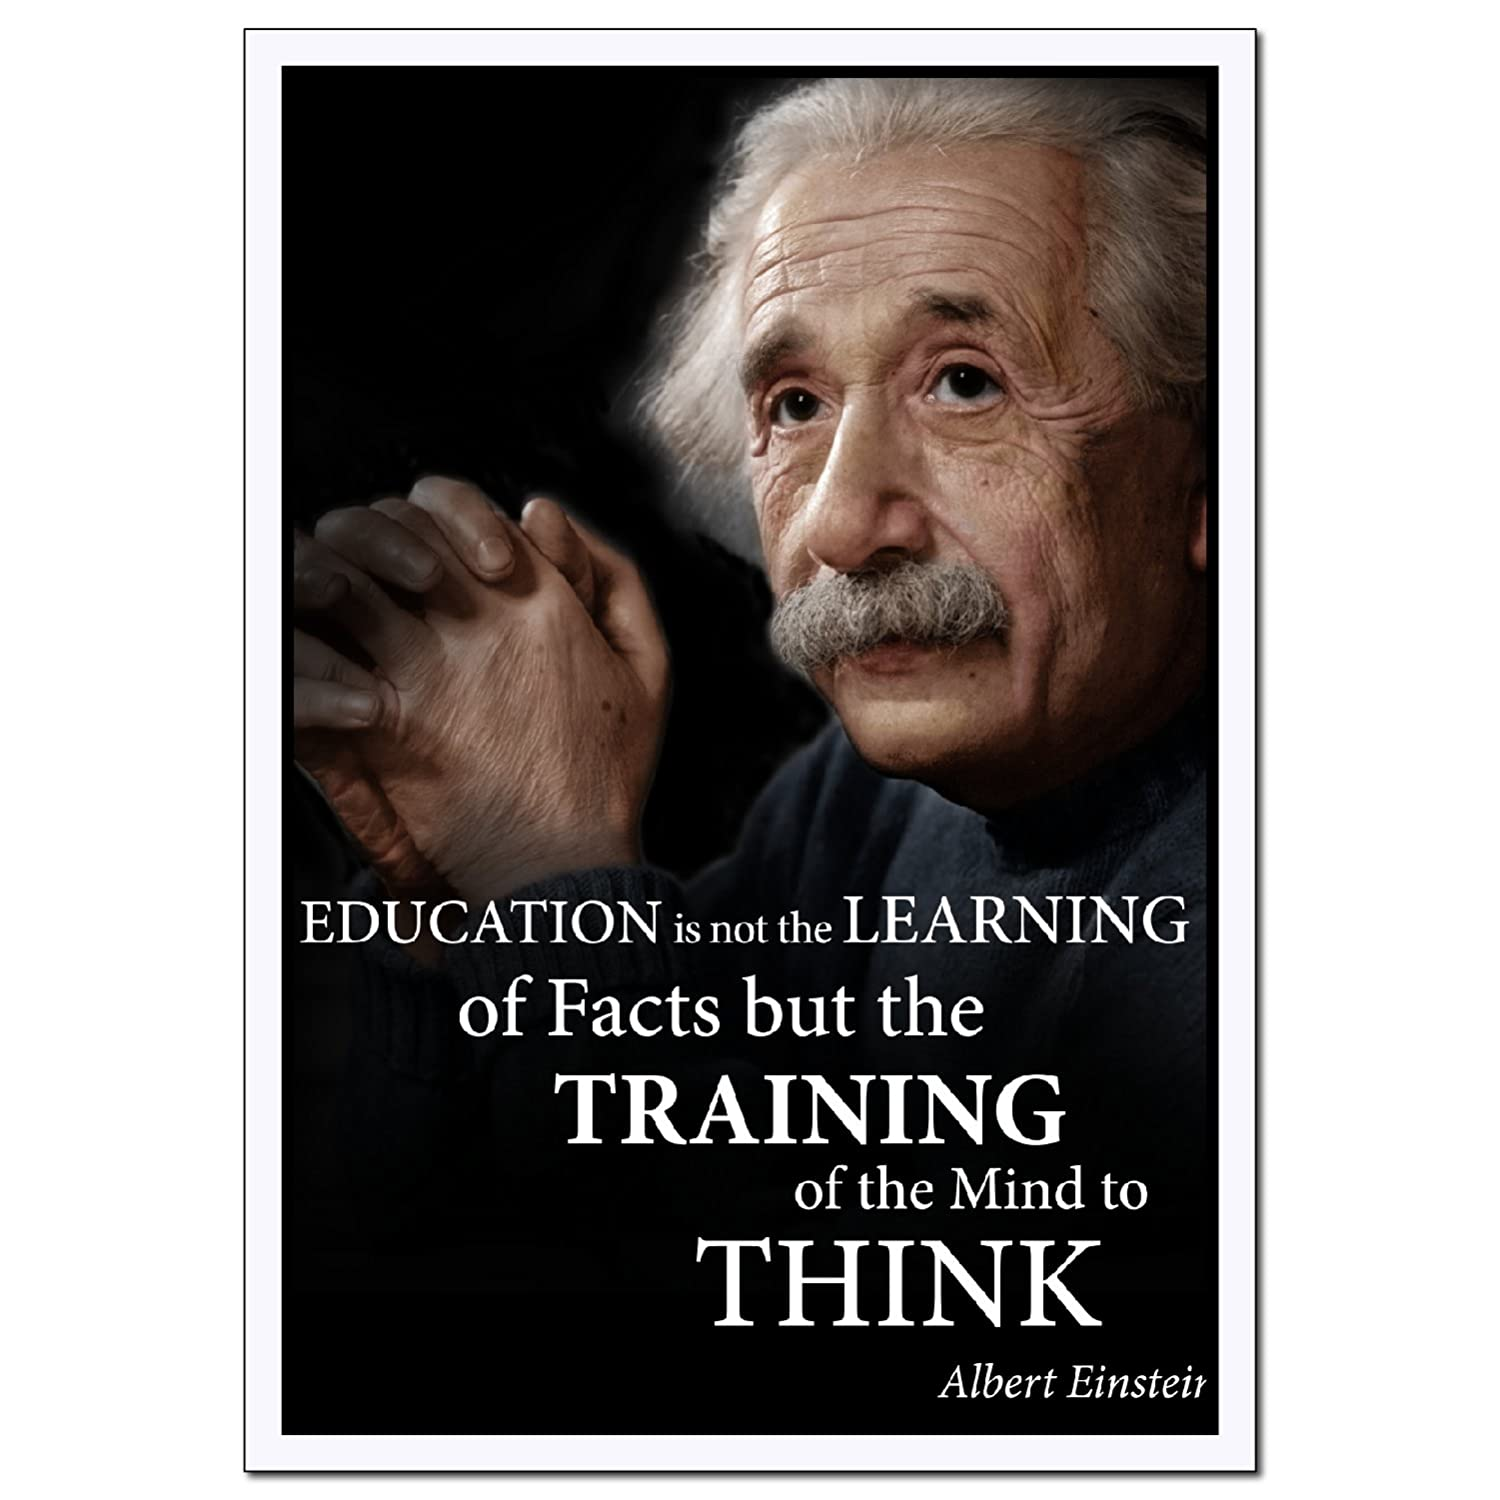 Young N Refined Albert Einstein Education Large Portrait Poster Quote Print for Home Study Library classrooms and Offices (18x24)